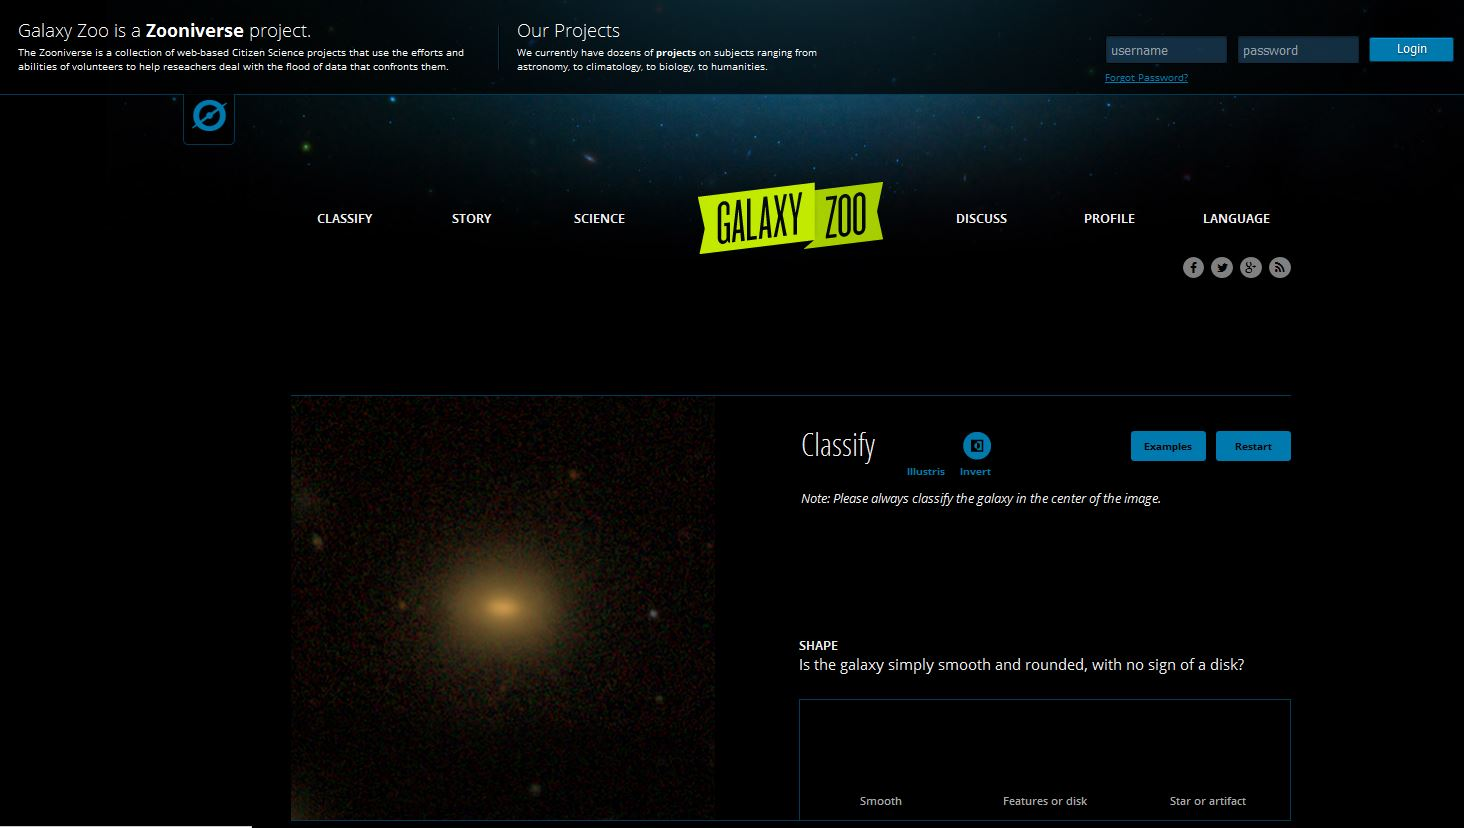 On Galaxy Zoo, users are invited to classify galaxies.